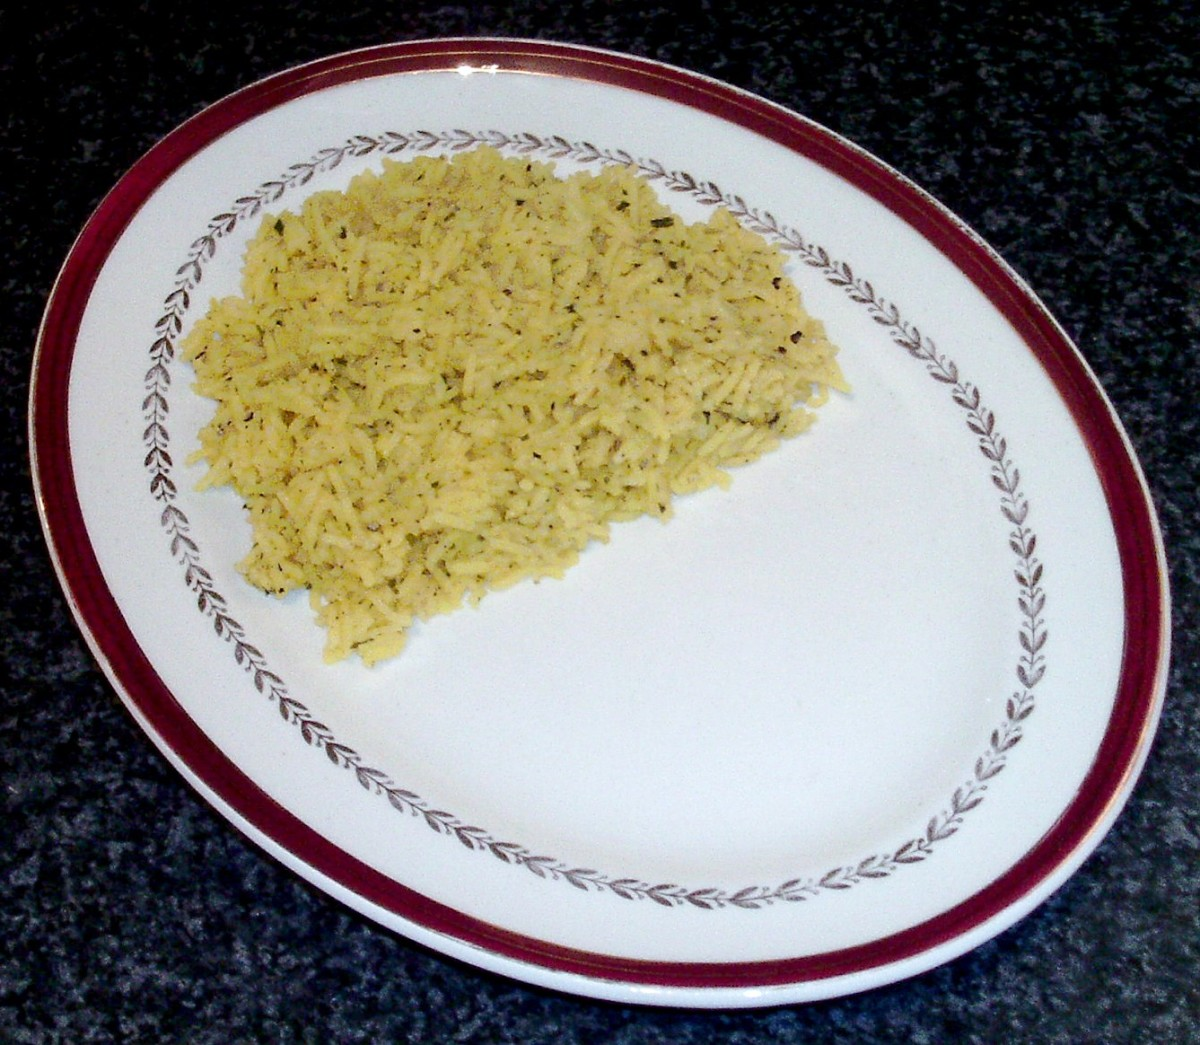 Turmeric rice is plated